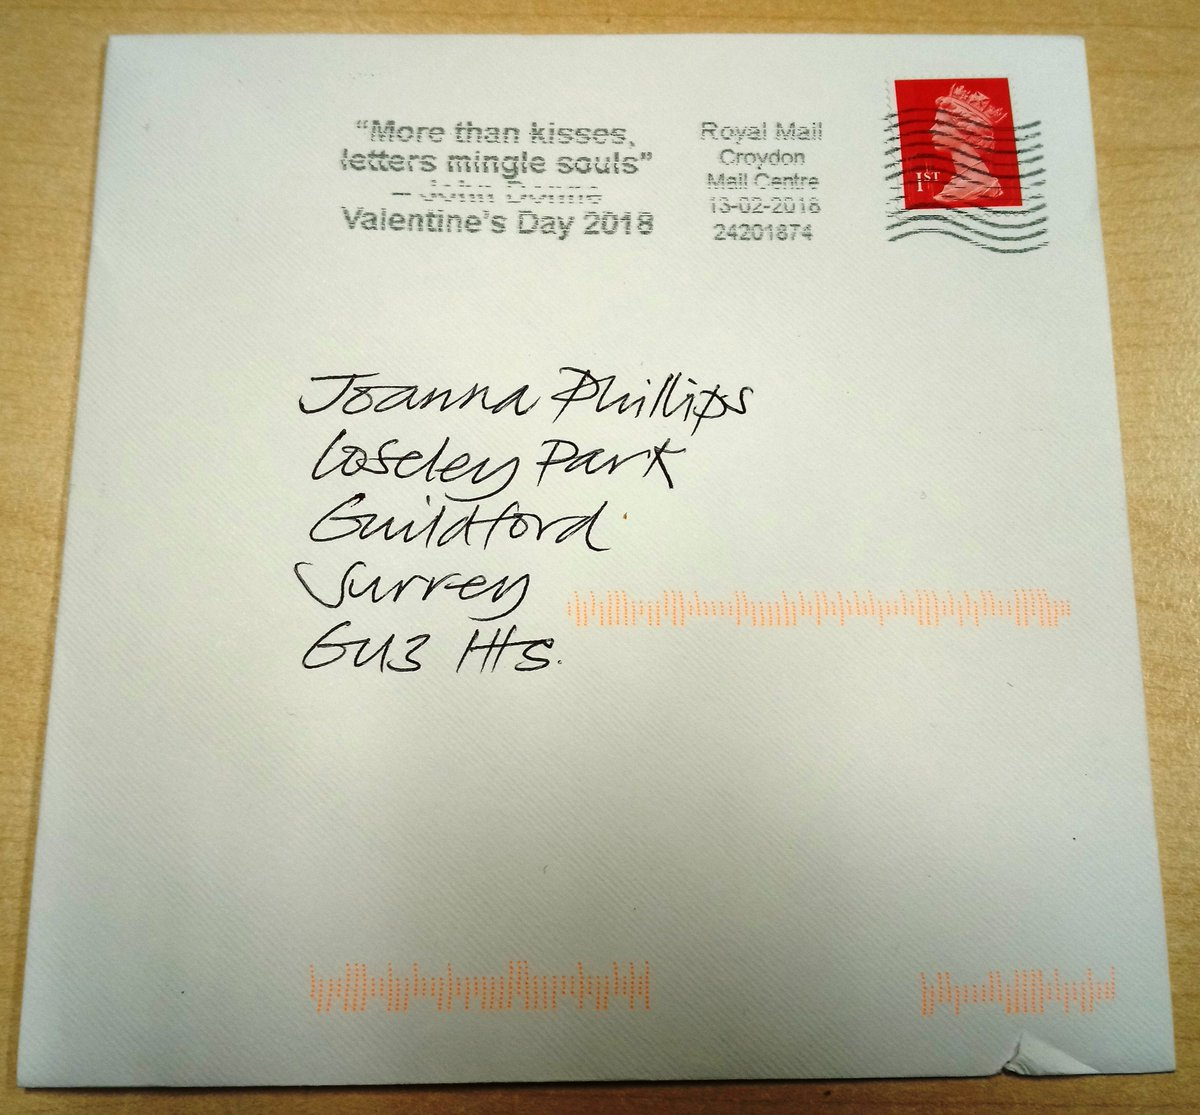 """Loving the @RoyalMail Valentine's post mark with John Donne's quote """"More than kisses, letters mingle souls"""". I expect he wrote Ann More (daughter of Loseley) many letters when he was secretly courting her. And before you ask, not a Valentine but a clever piece of marketing!"""